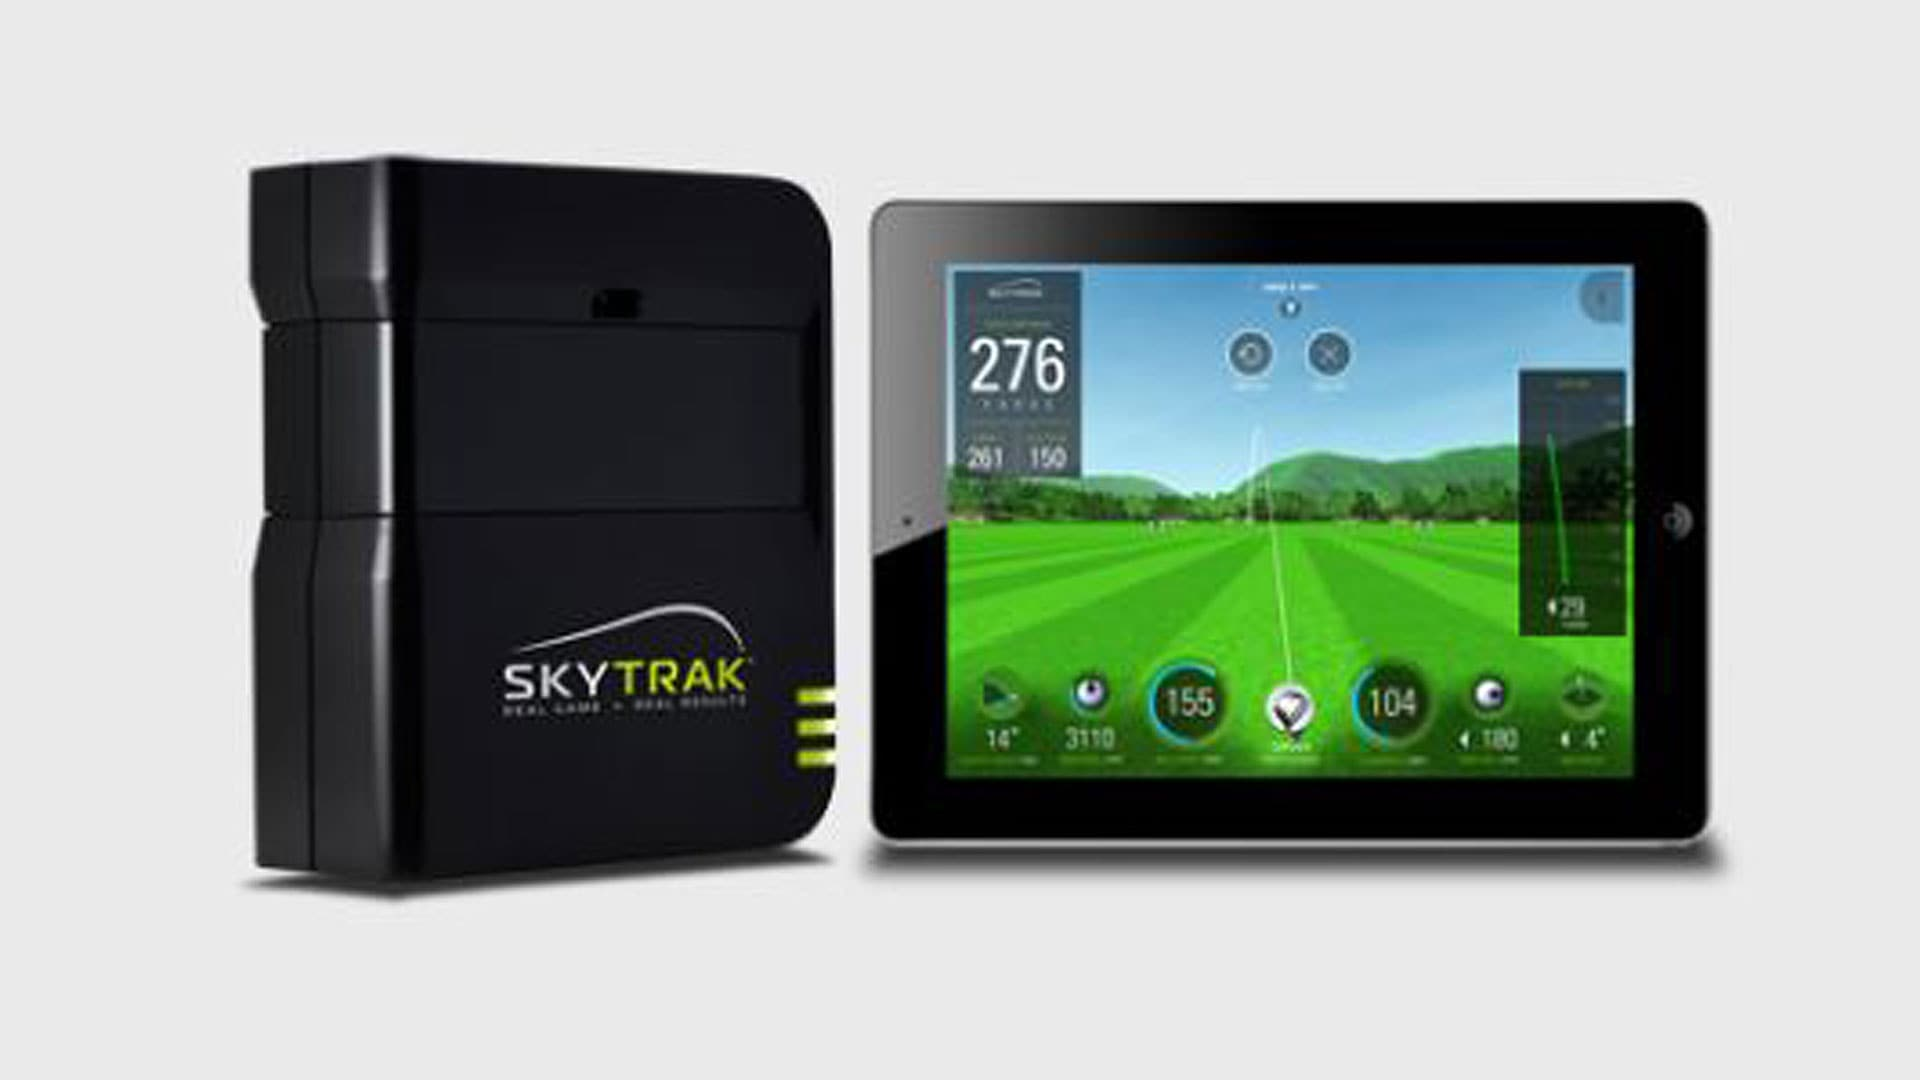 skytrak  personal launch monitor  simulator